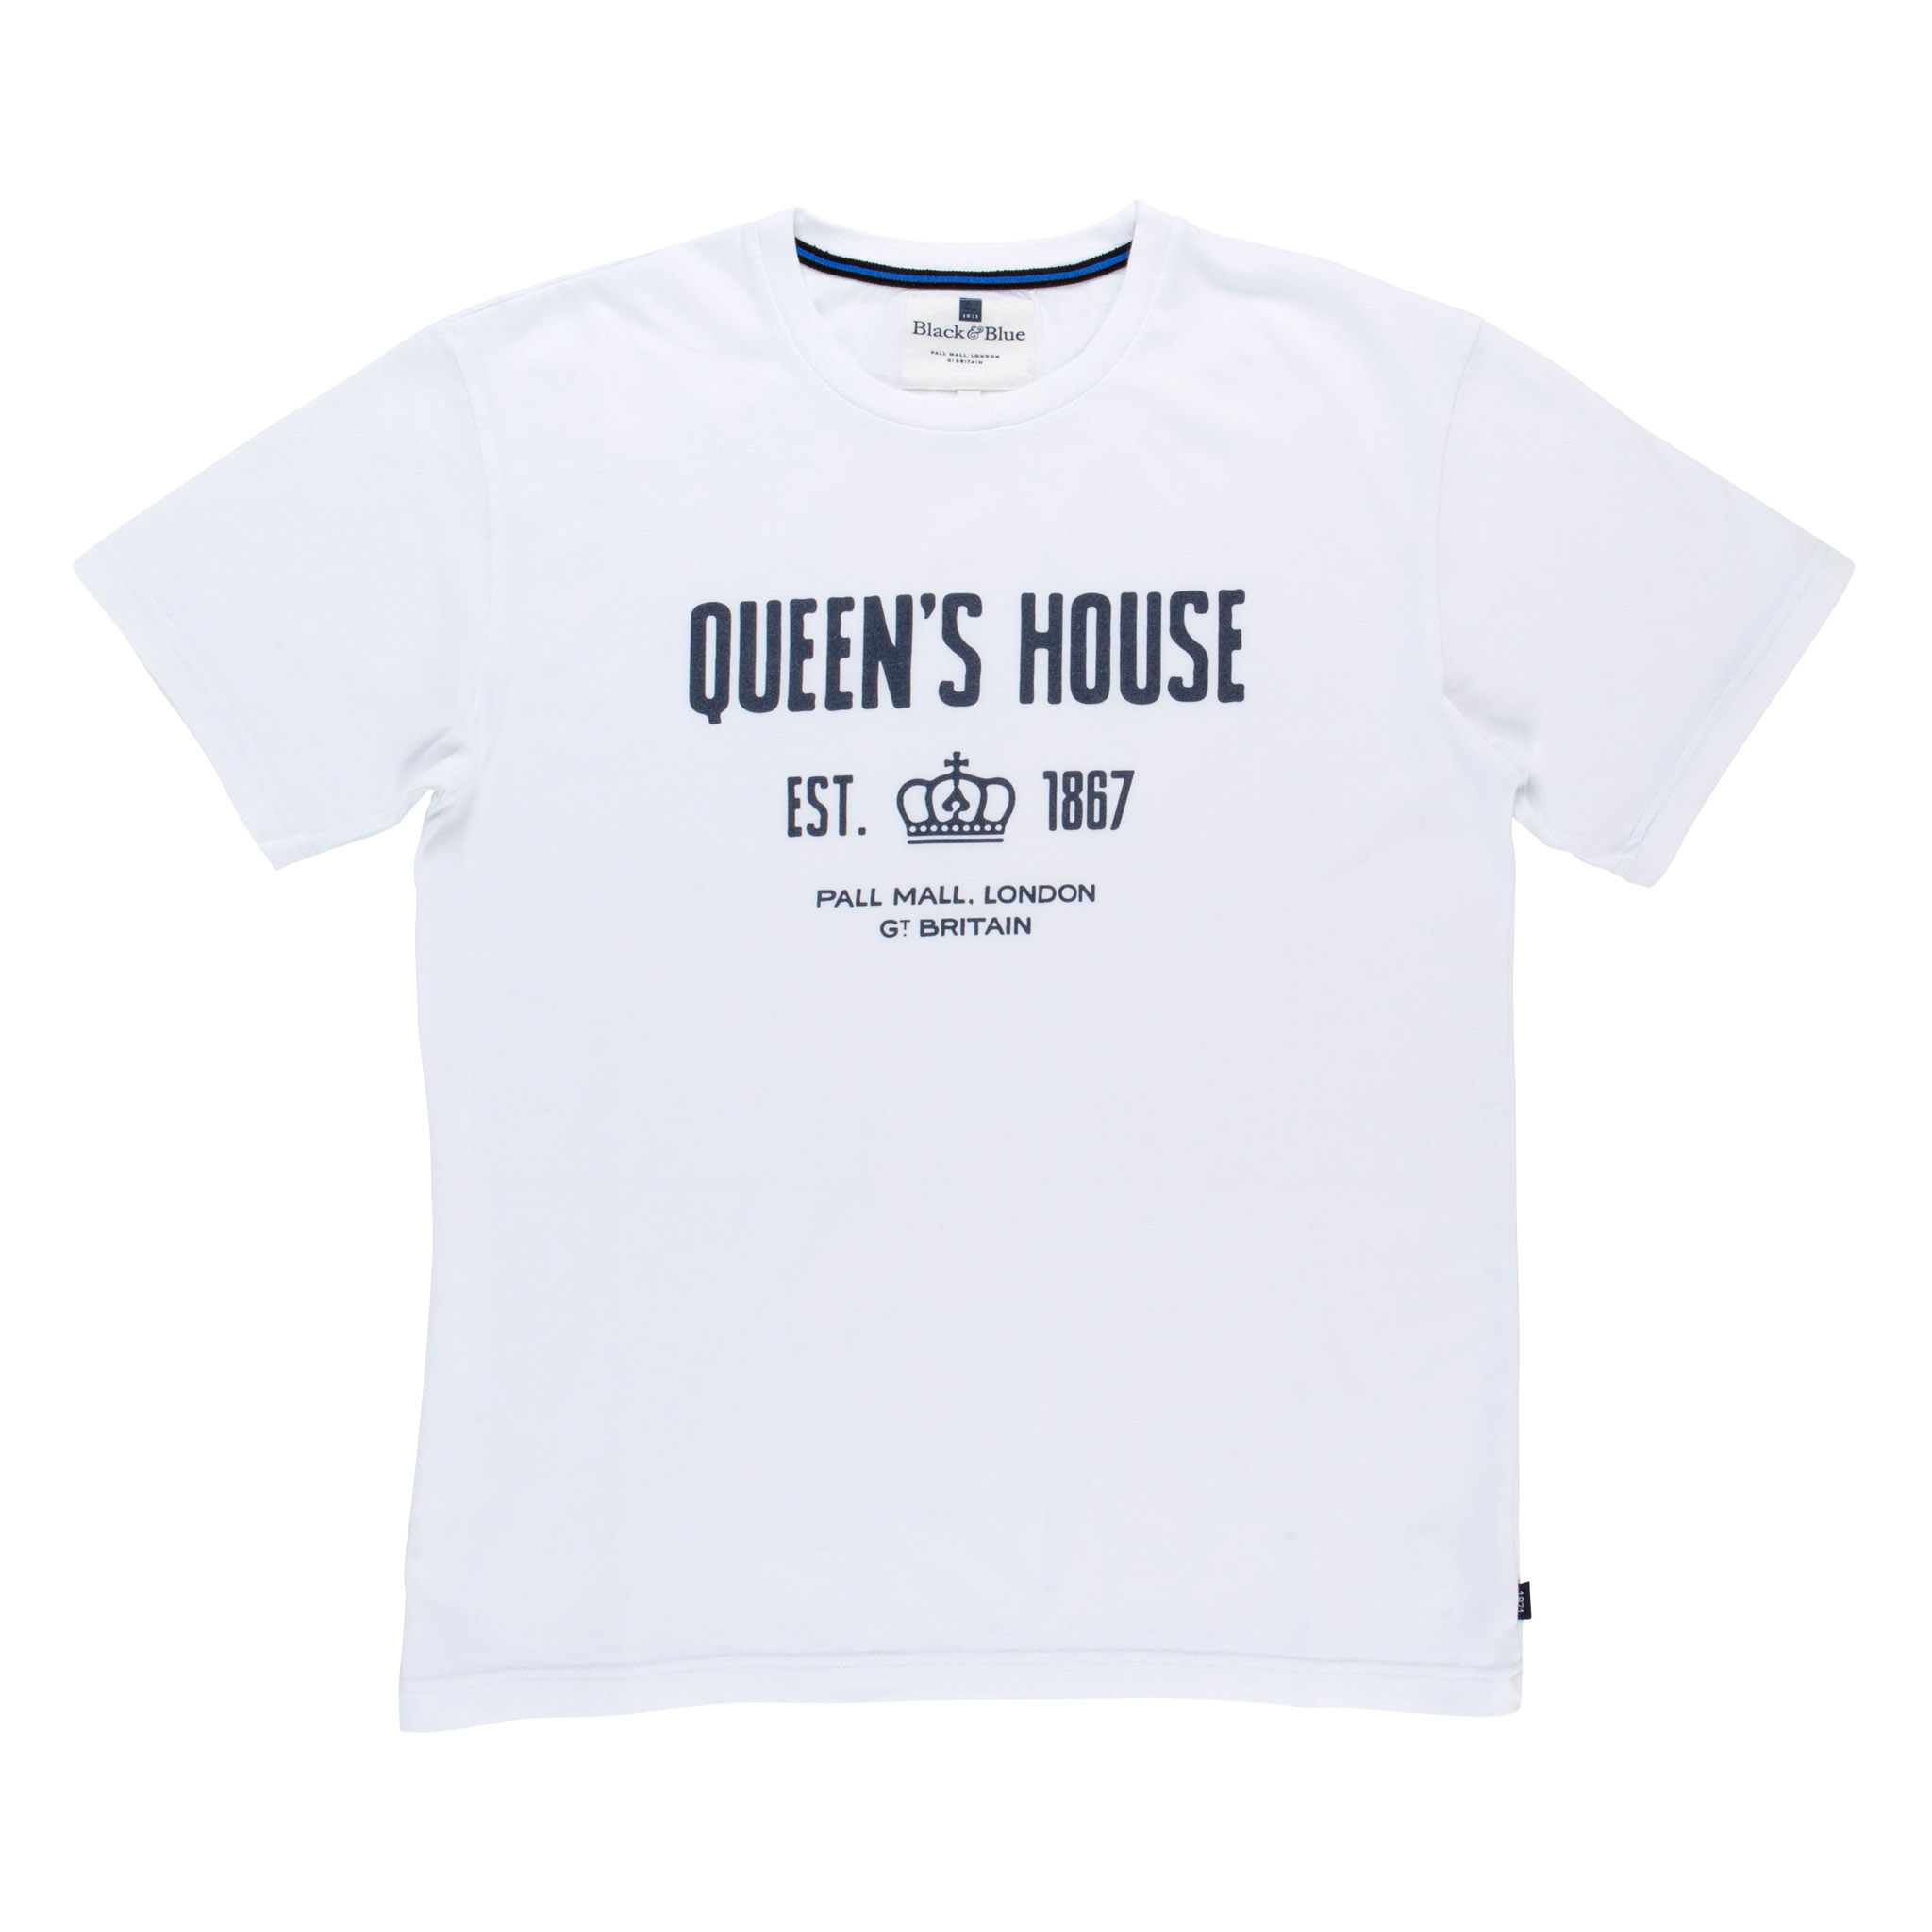 Queen's House White T-shirt